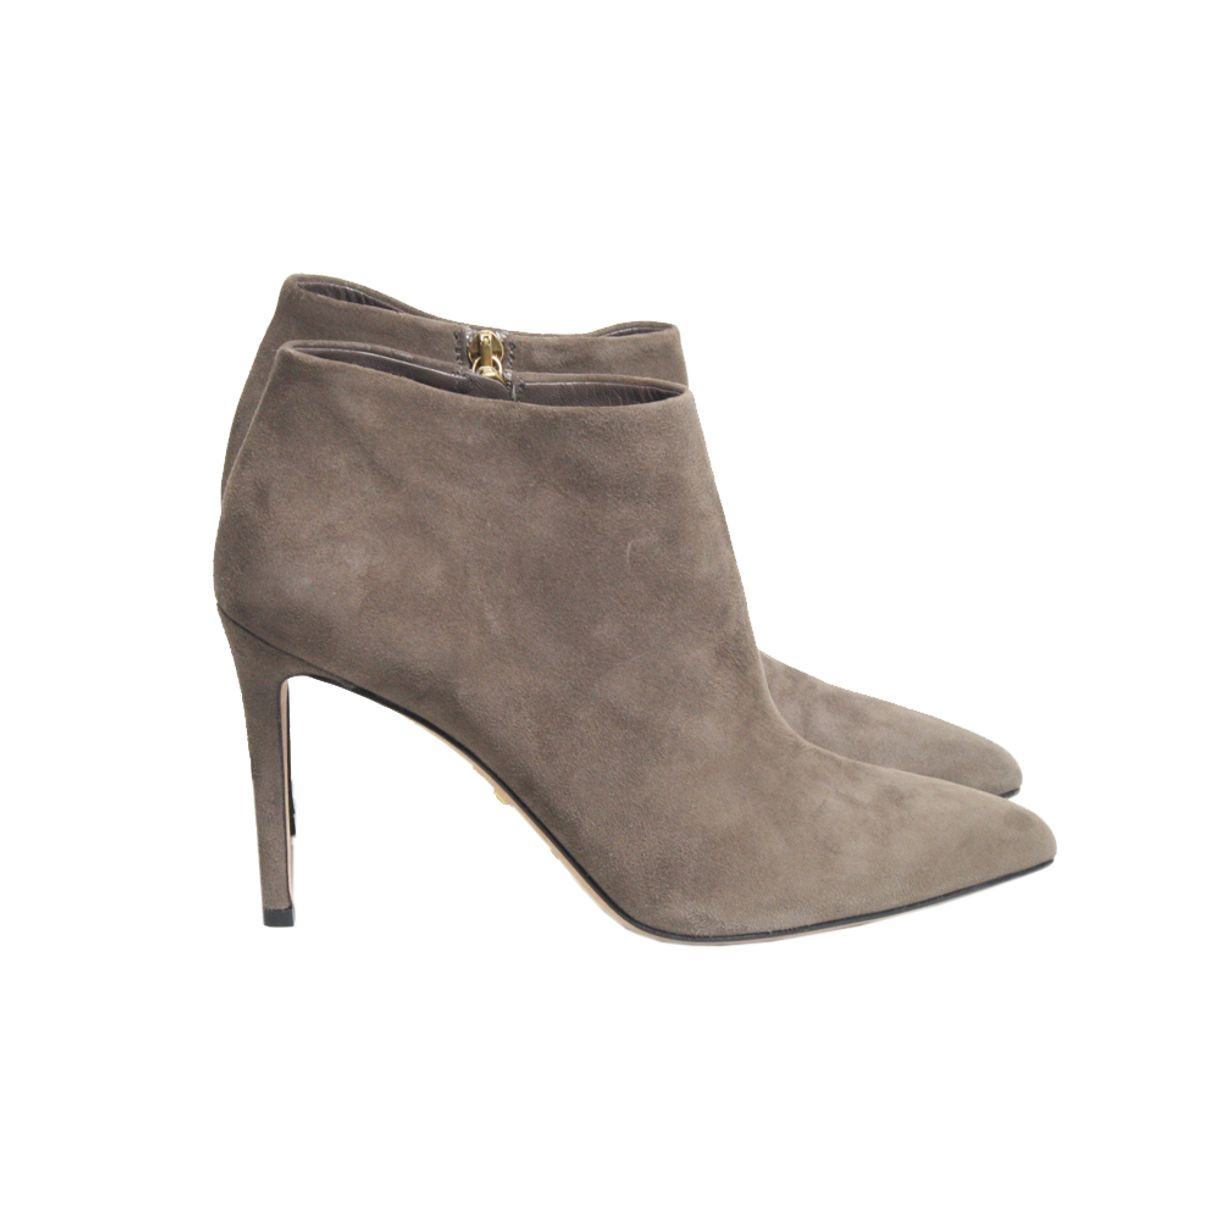 Ankle-boot-Gucci-Camurca